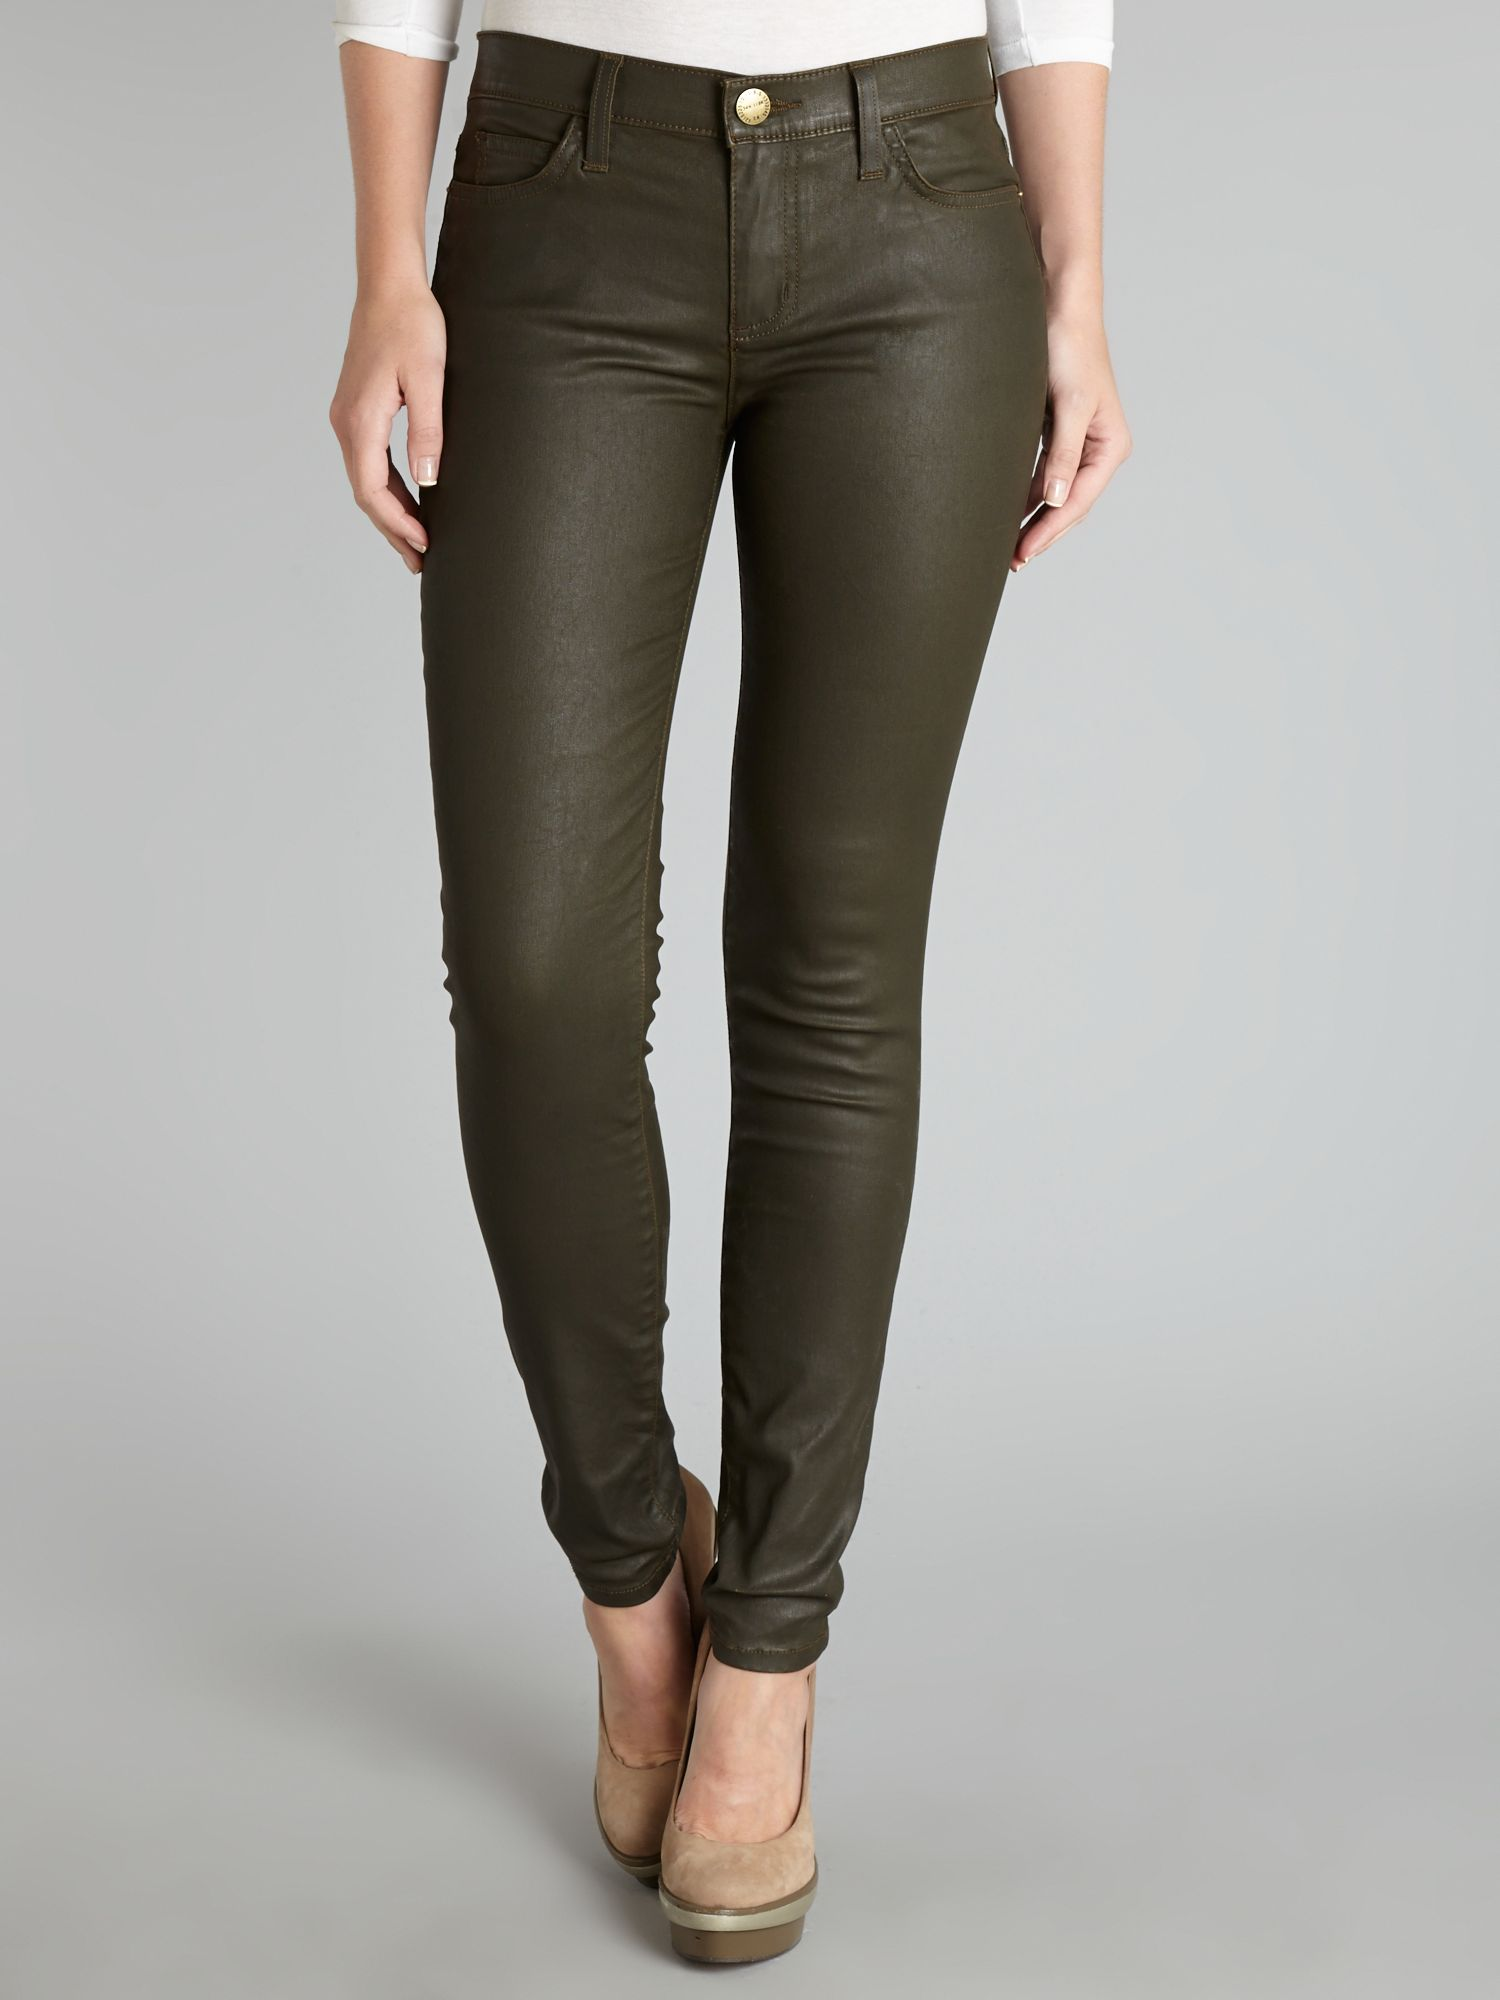 The Ankle Skinny coated jeans in Army Green